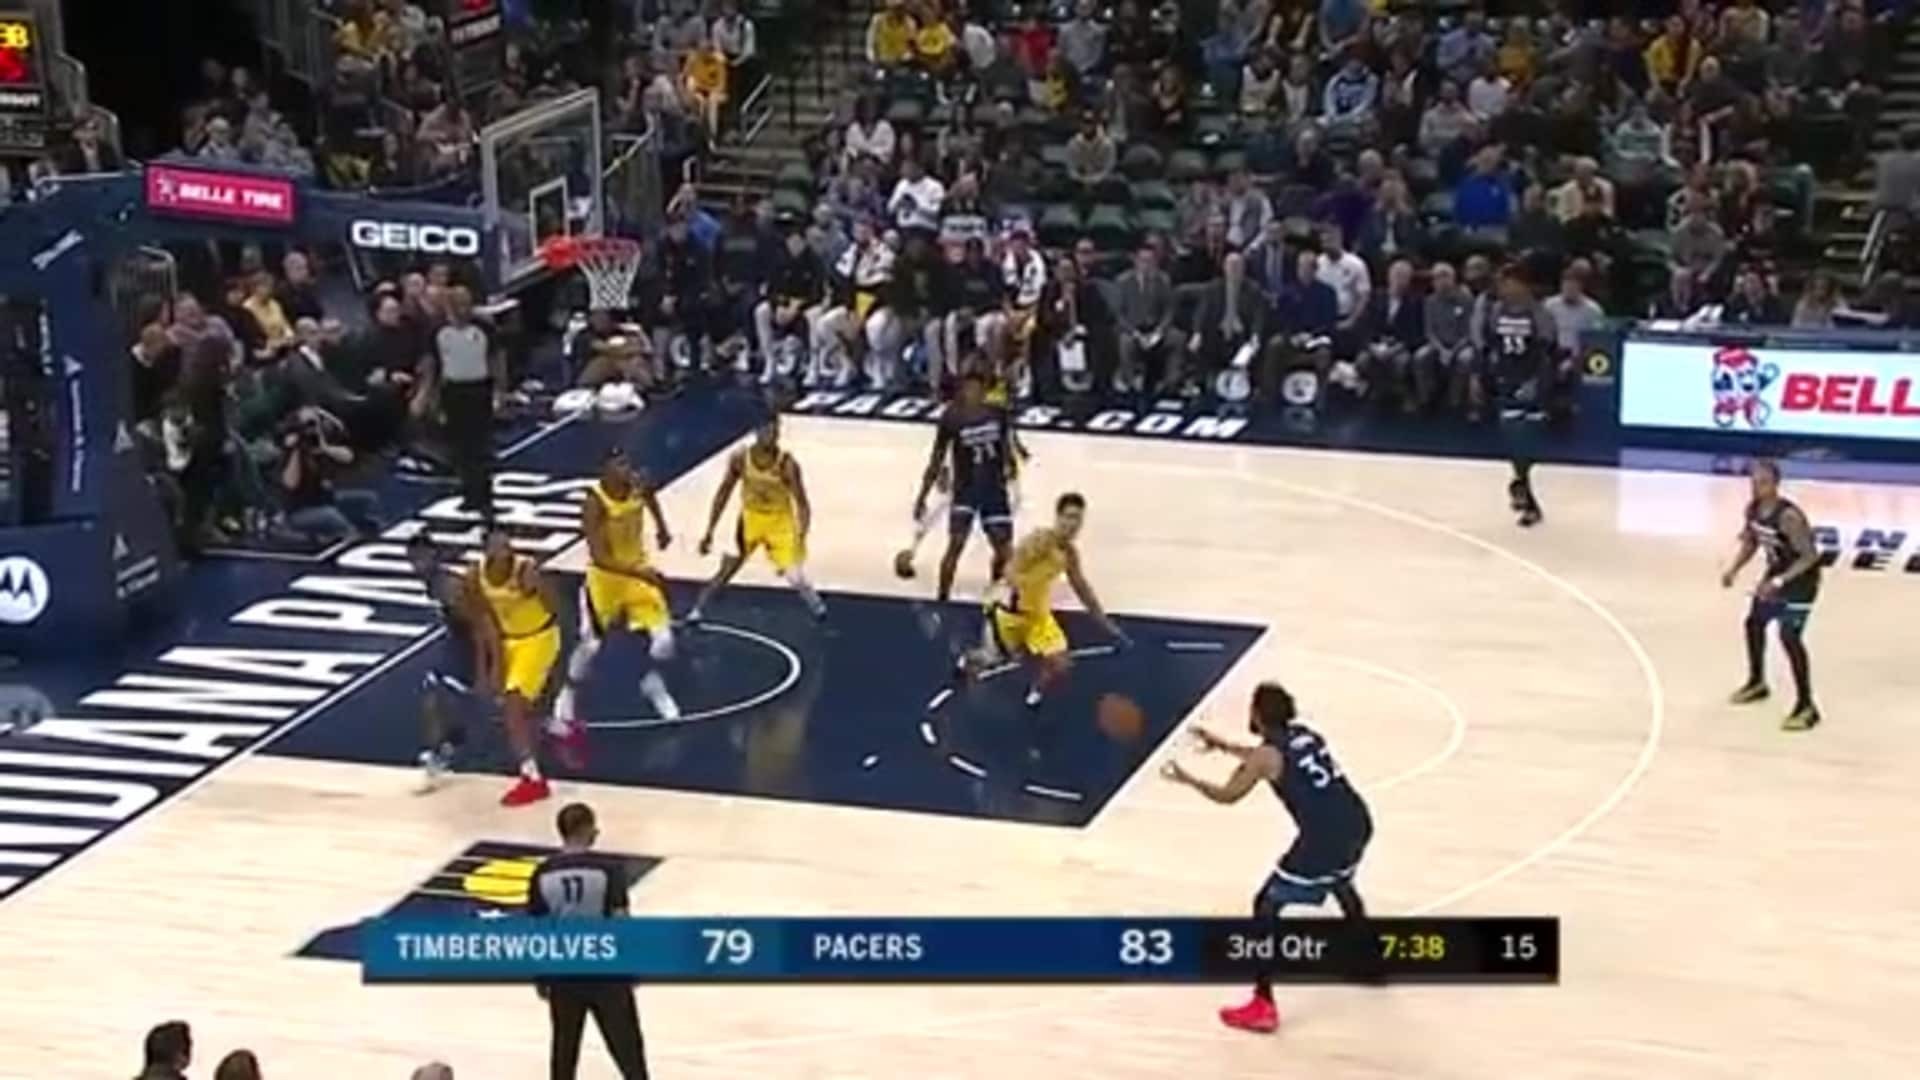 Highlights | Karl-Anthony Towns 27 Points vs. Pacers (1.17.20)